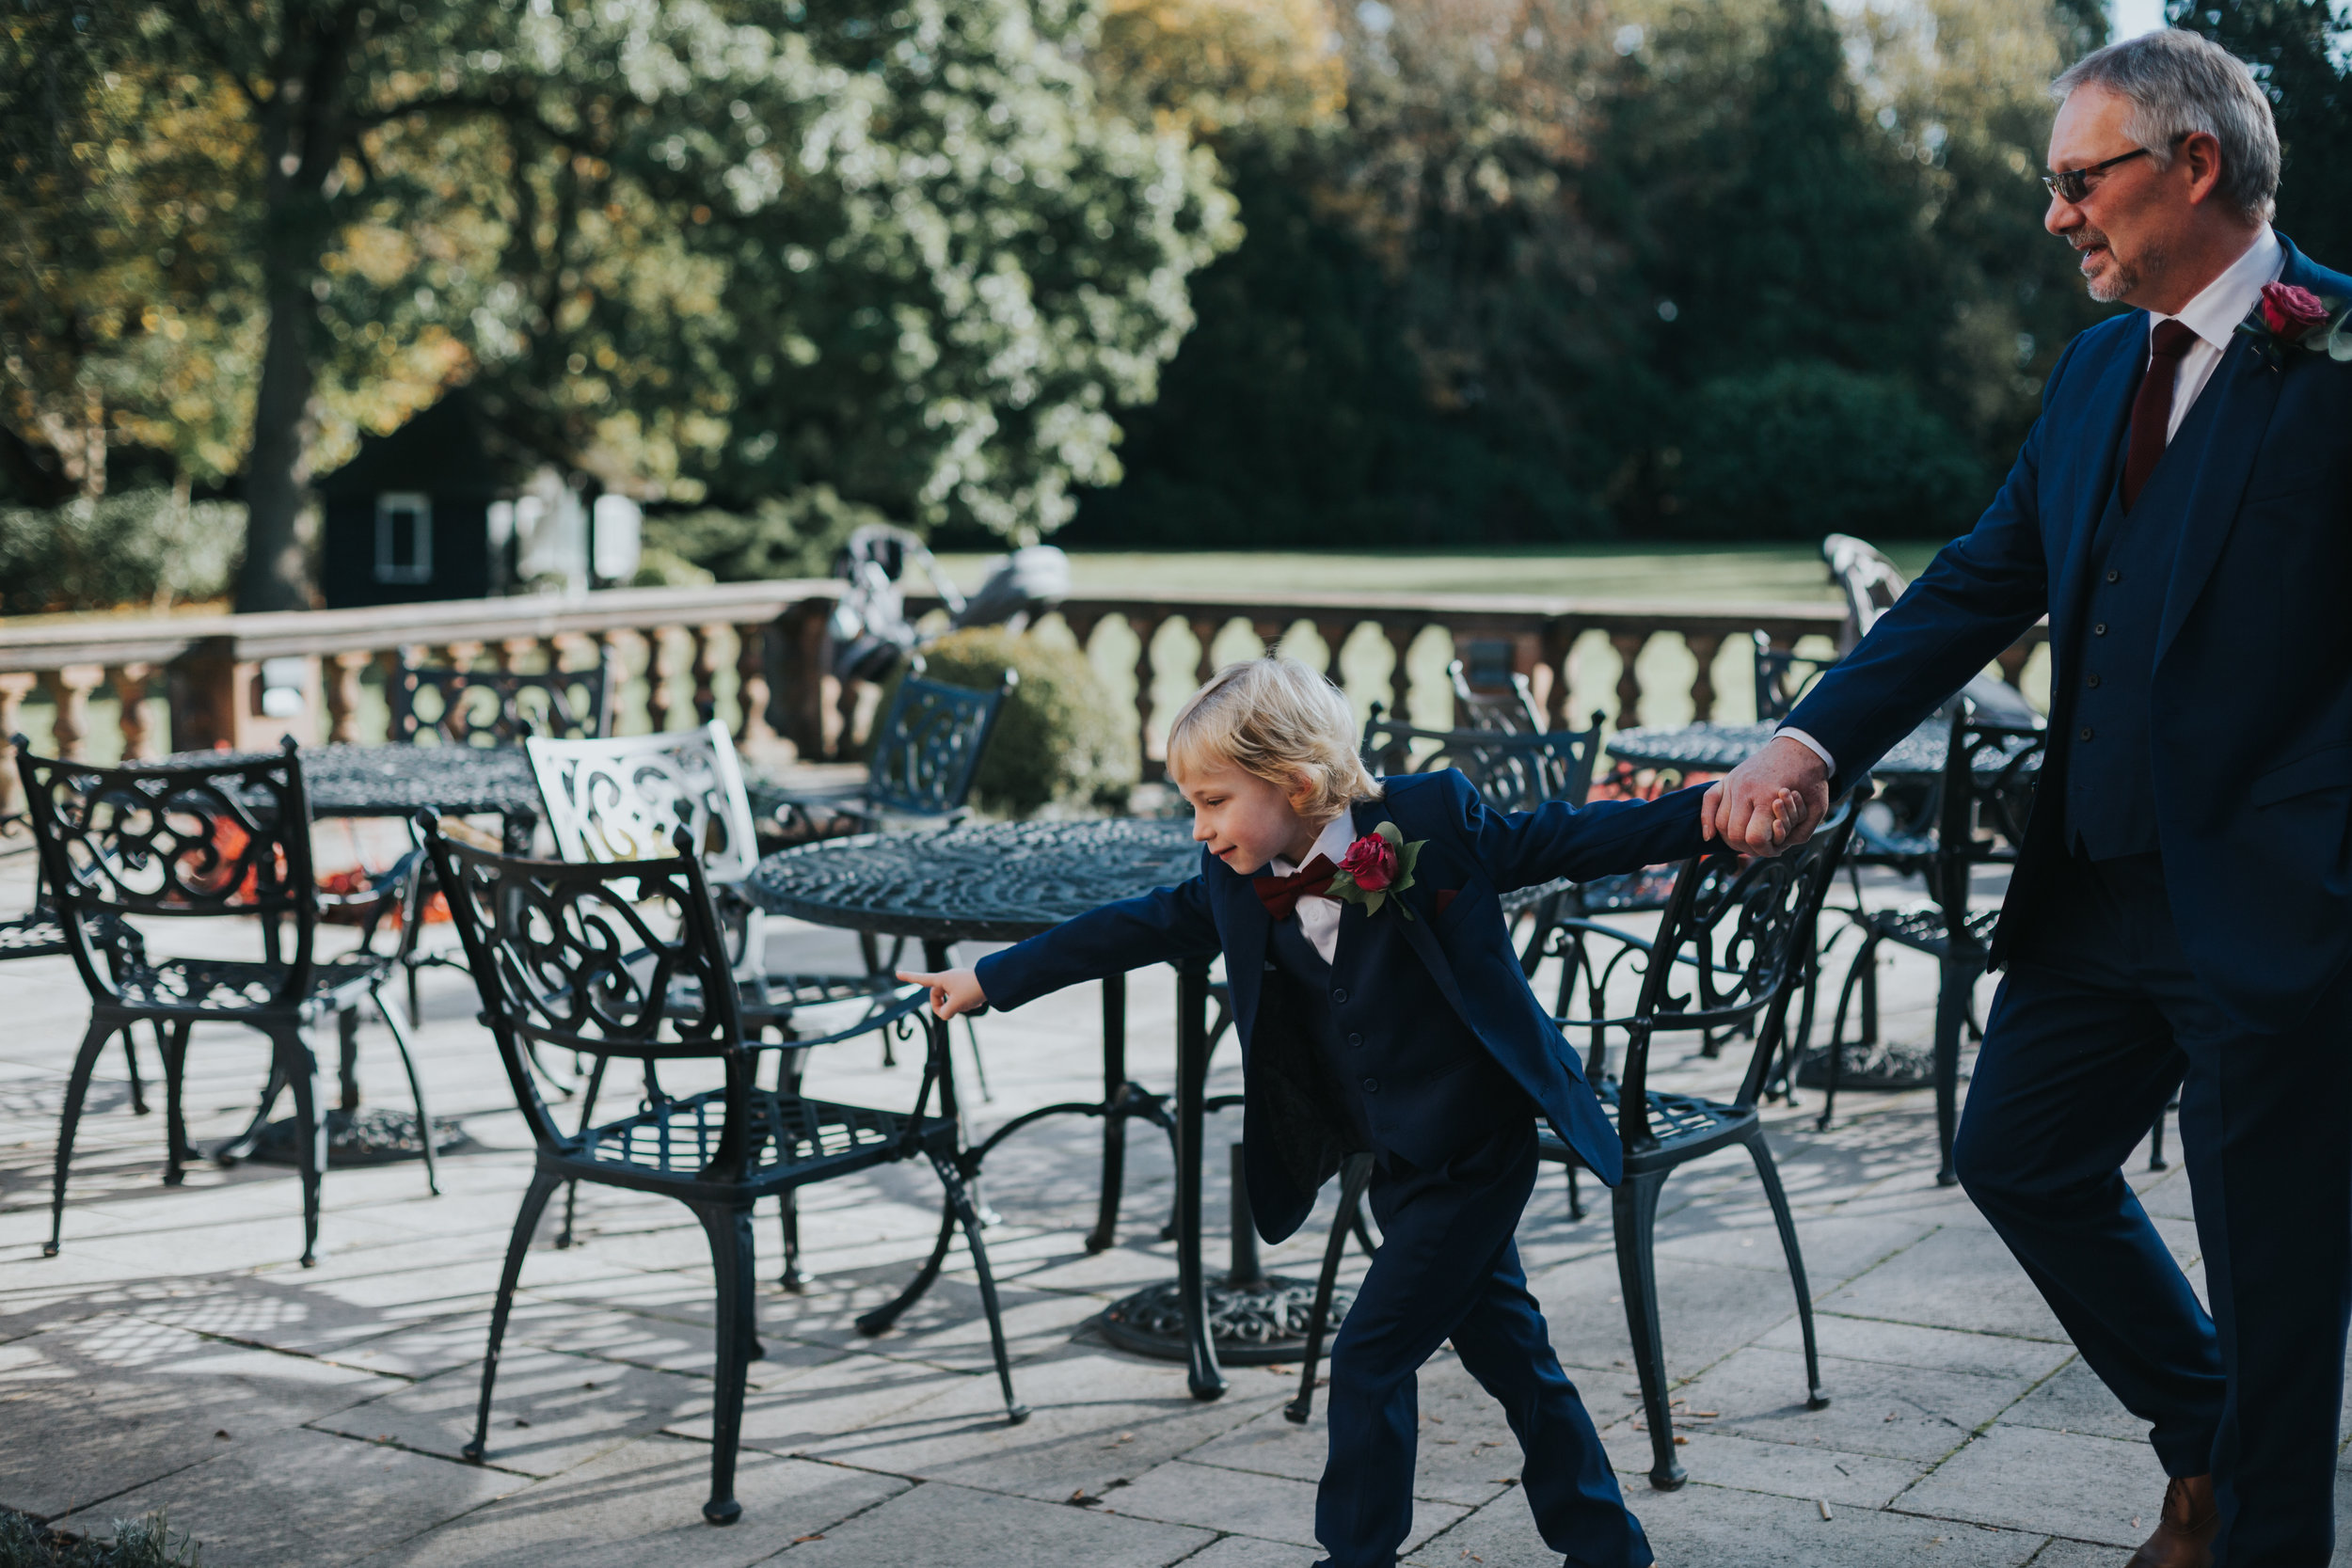 Small boy in a blue suit and red bow tie drags an older groomsmen across the patio.